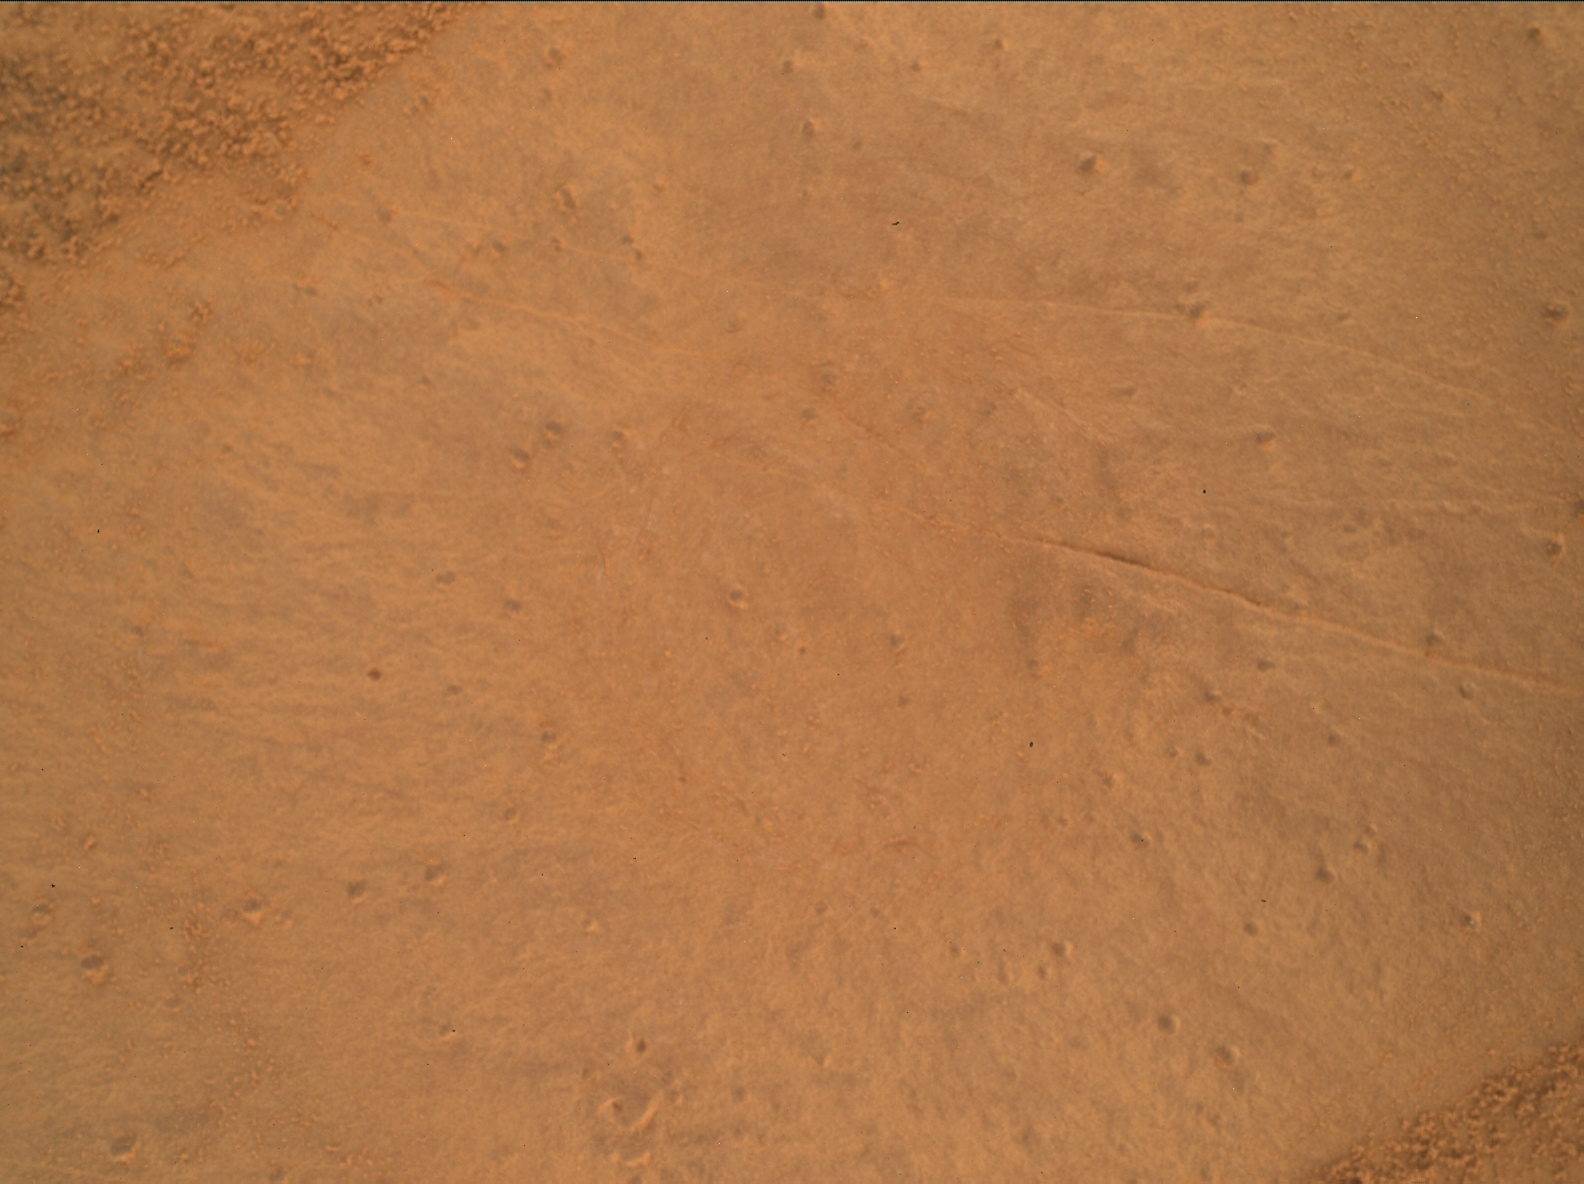 Nasa's Mars rover Curiosity acquired this image using its Mars Hand Lens Imager (MAHLI) on Sol 2134